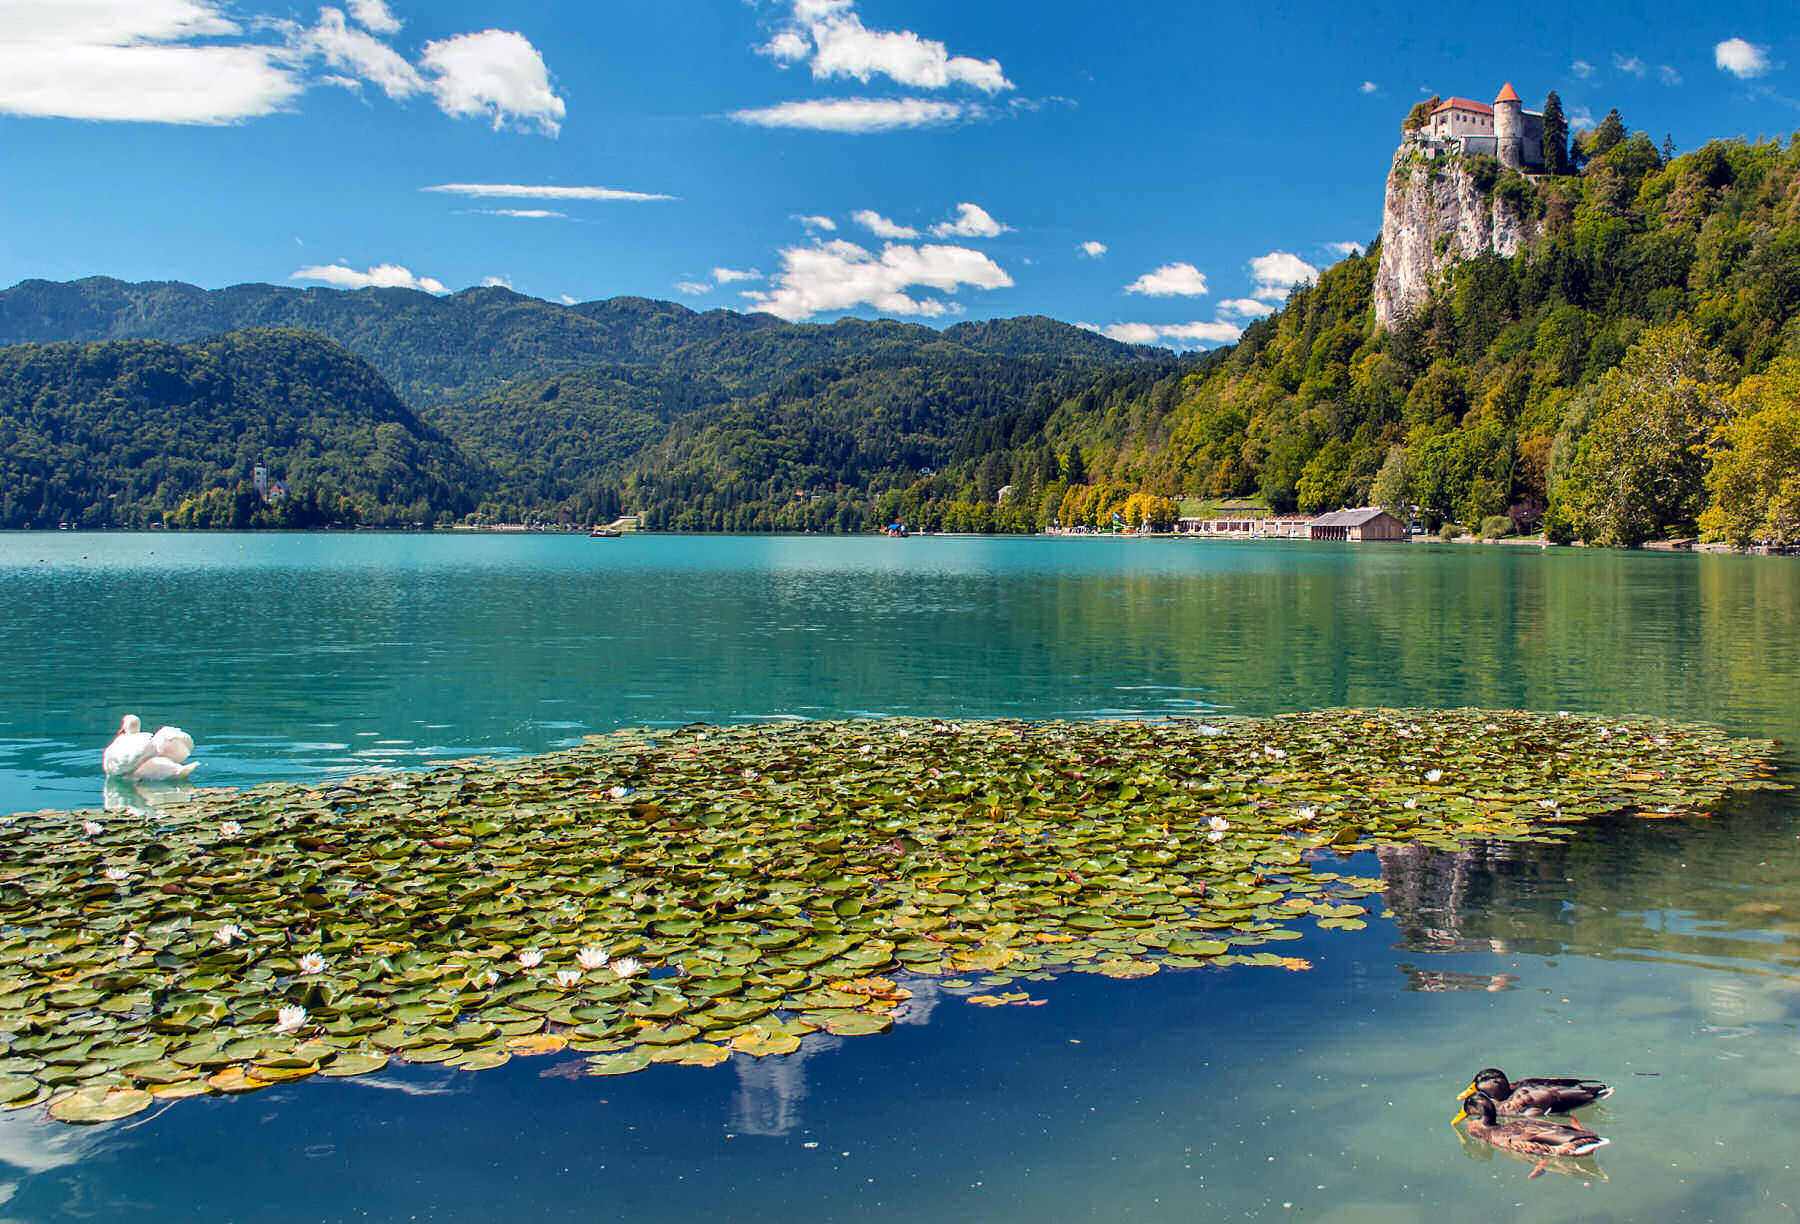 Water lilies and swan on Bled Lake, Slovenia